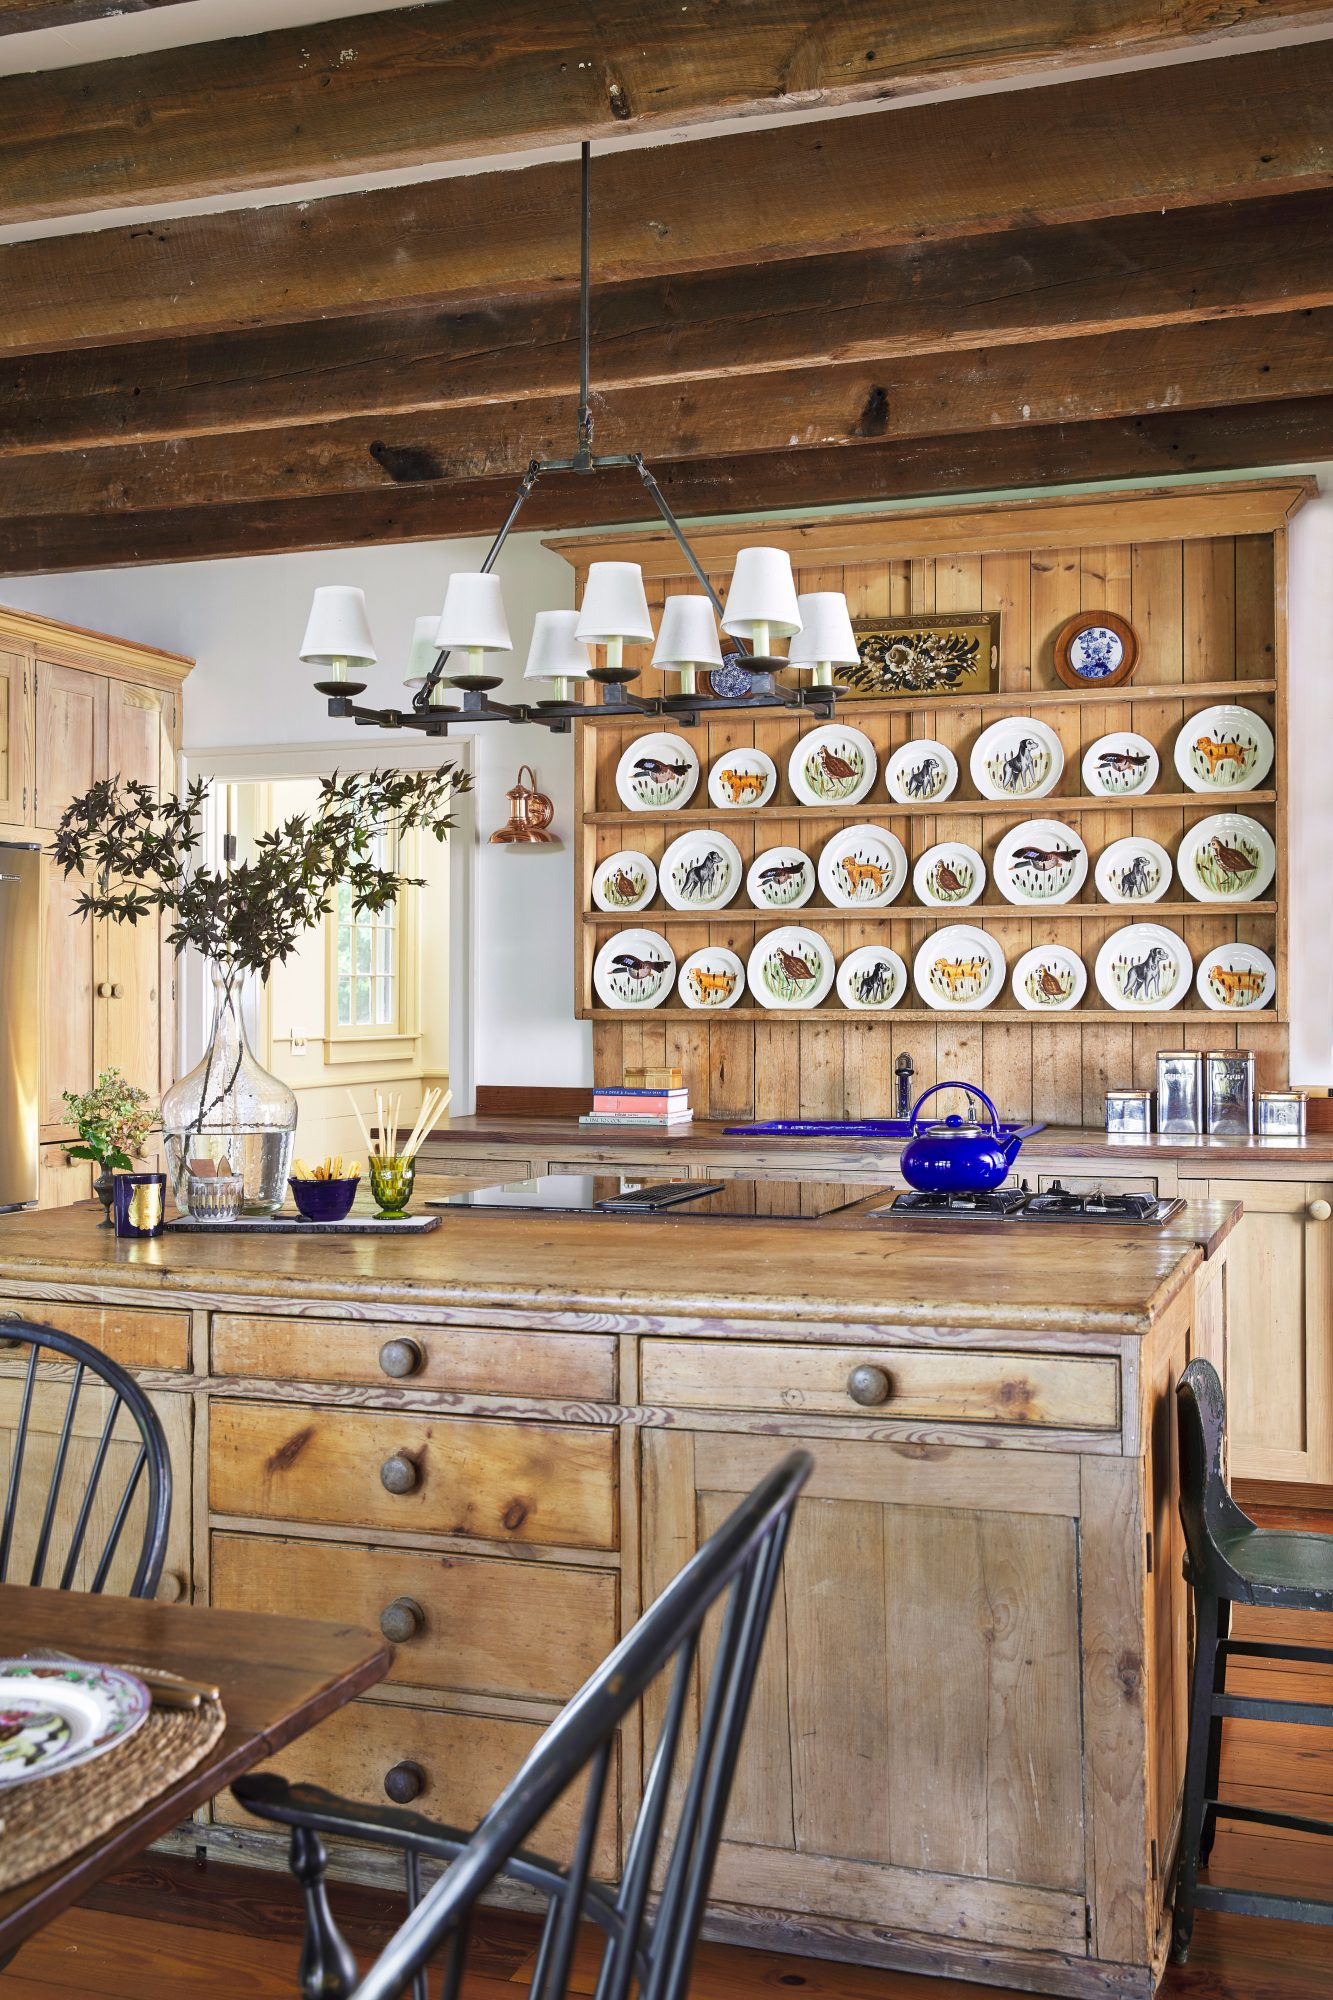 Cottage Kitchen with Wood Beams Overhead and Plate Collection